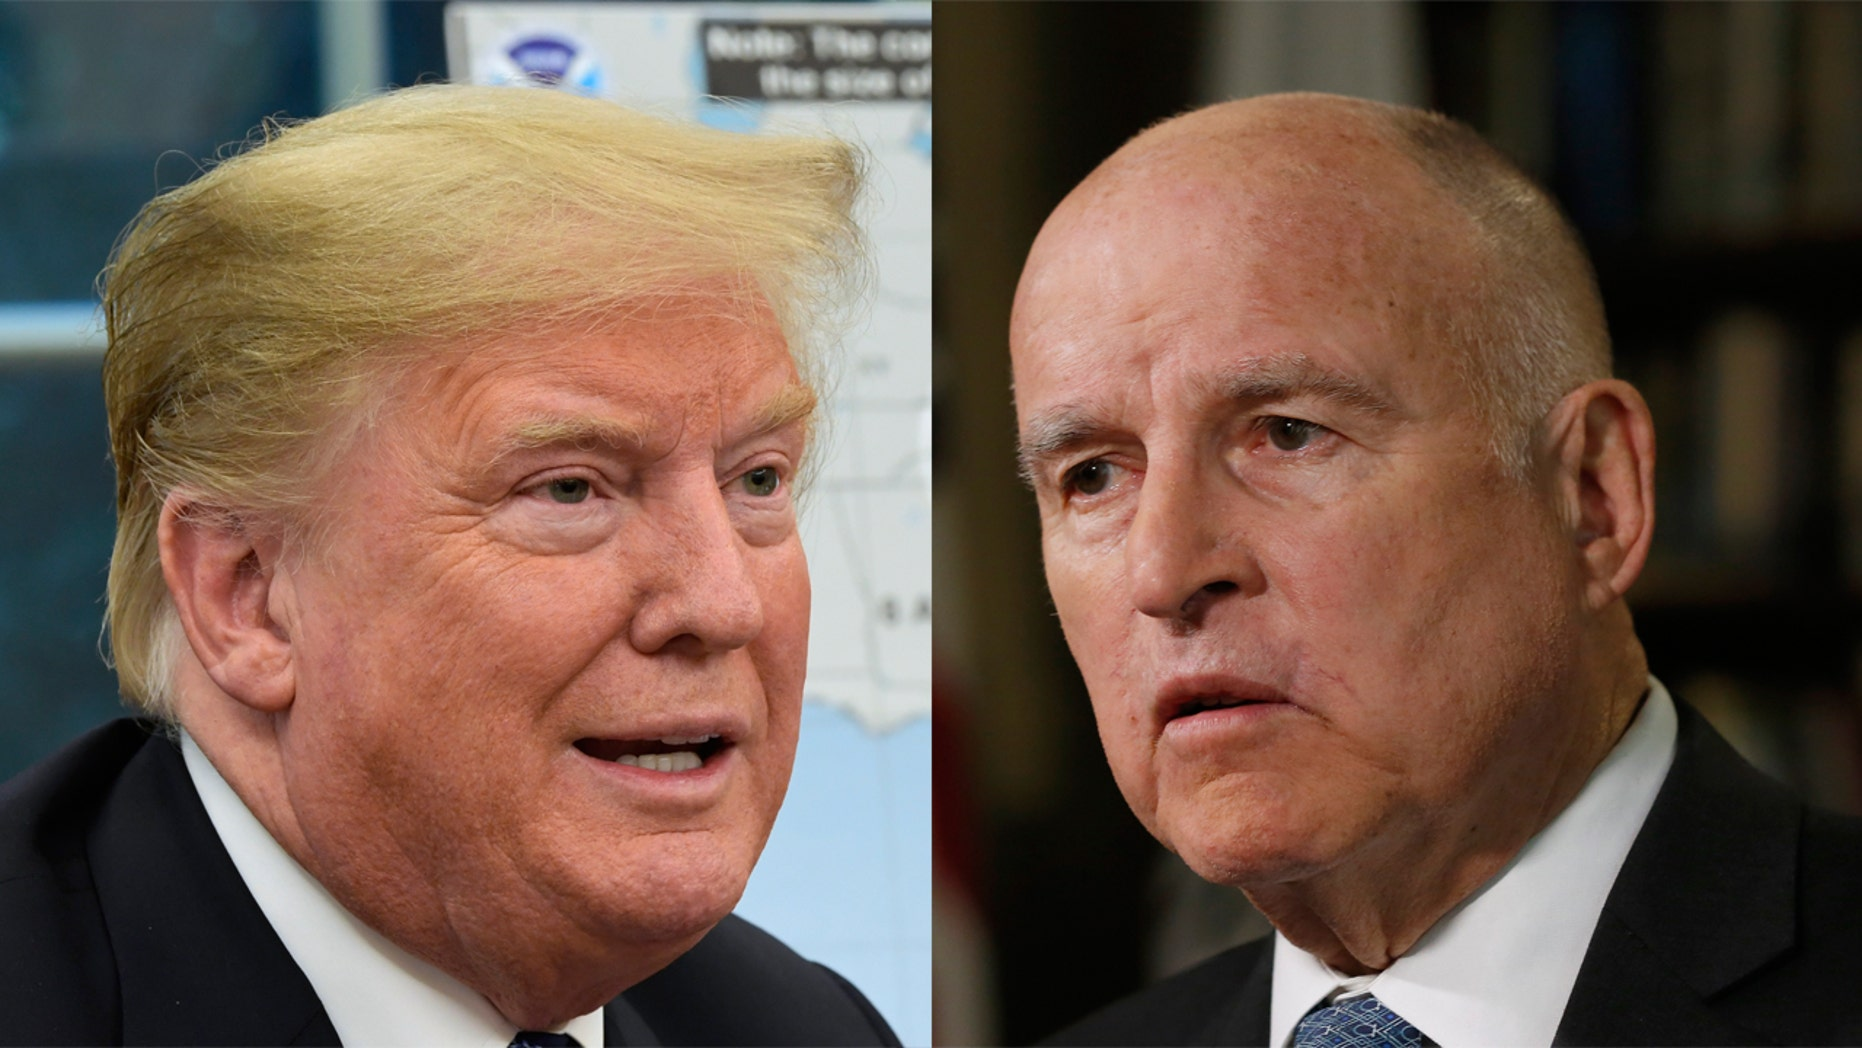 President Trump and California Gov. Jerry Brown have been at odds on a number of issues.